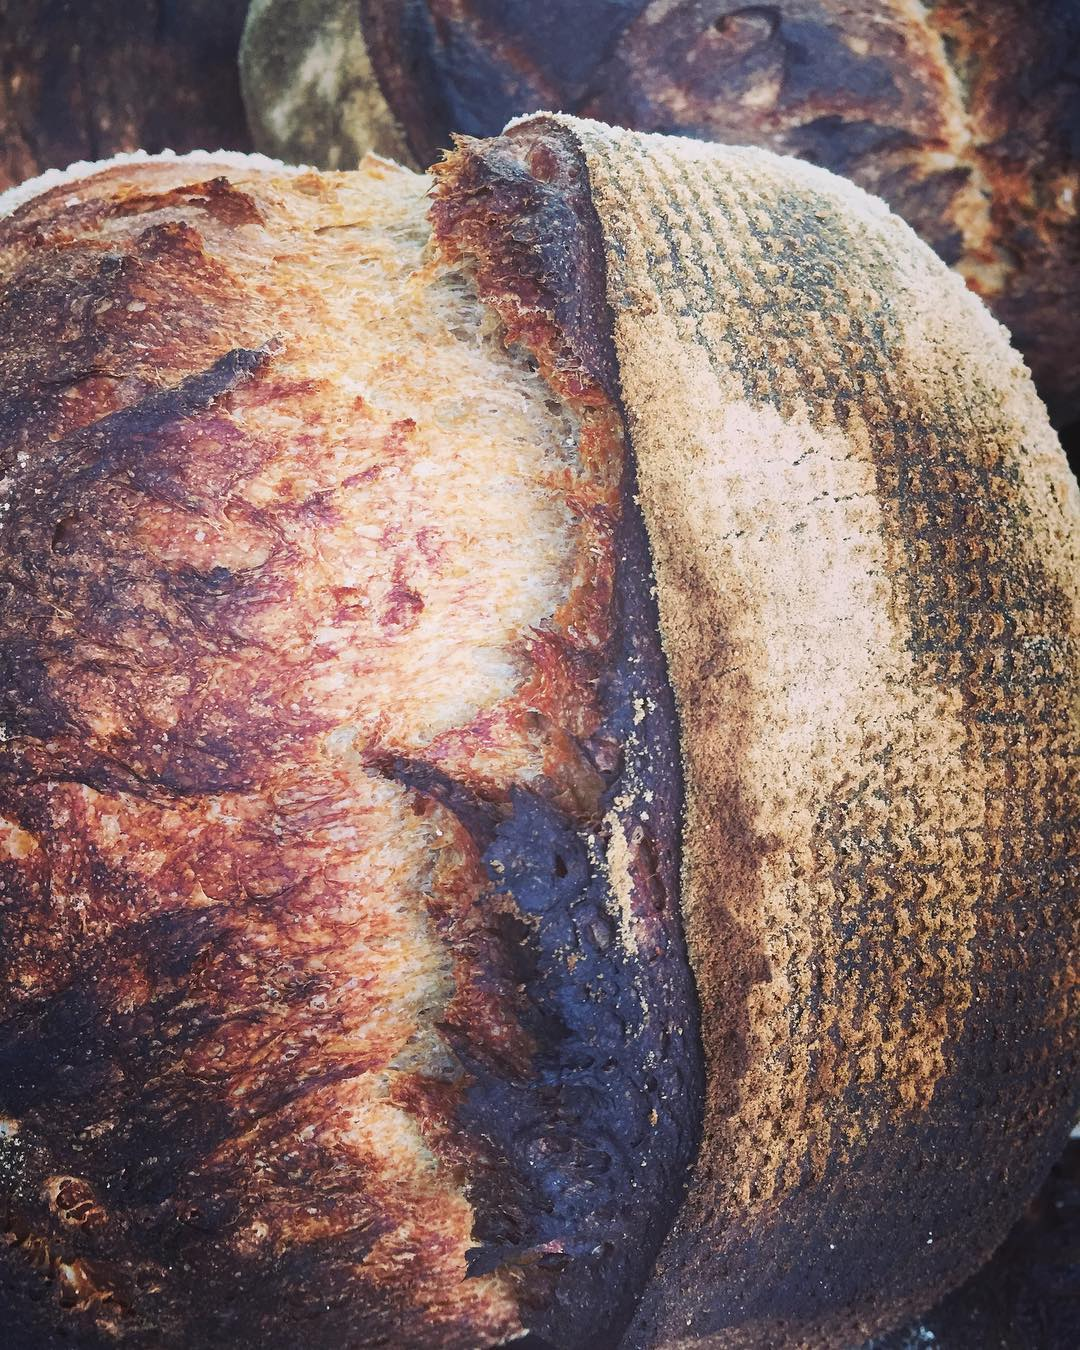 Bread & Baked Goods - Whole-grain. Naturally leavened. Made by hand. Traditionally.Simplicity in compostion.